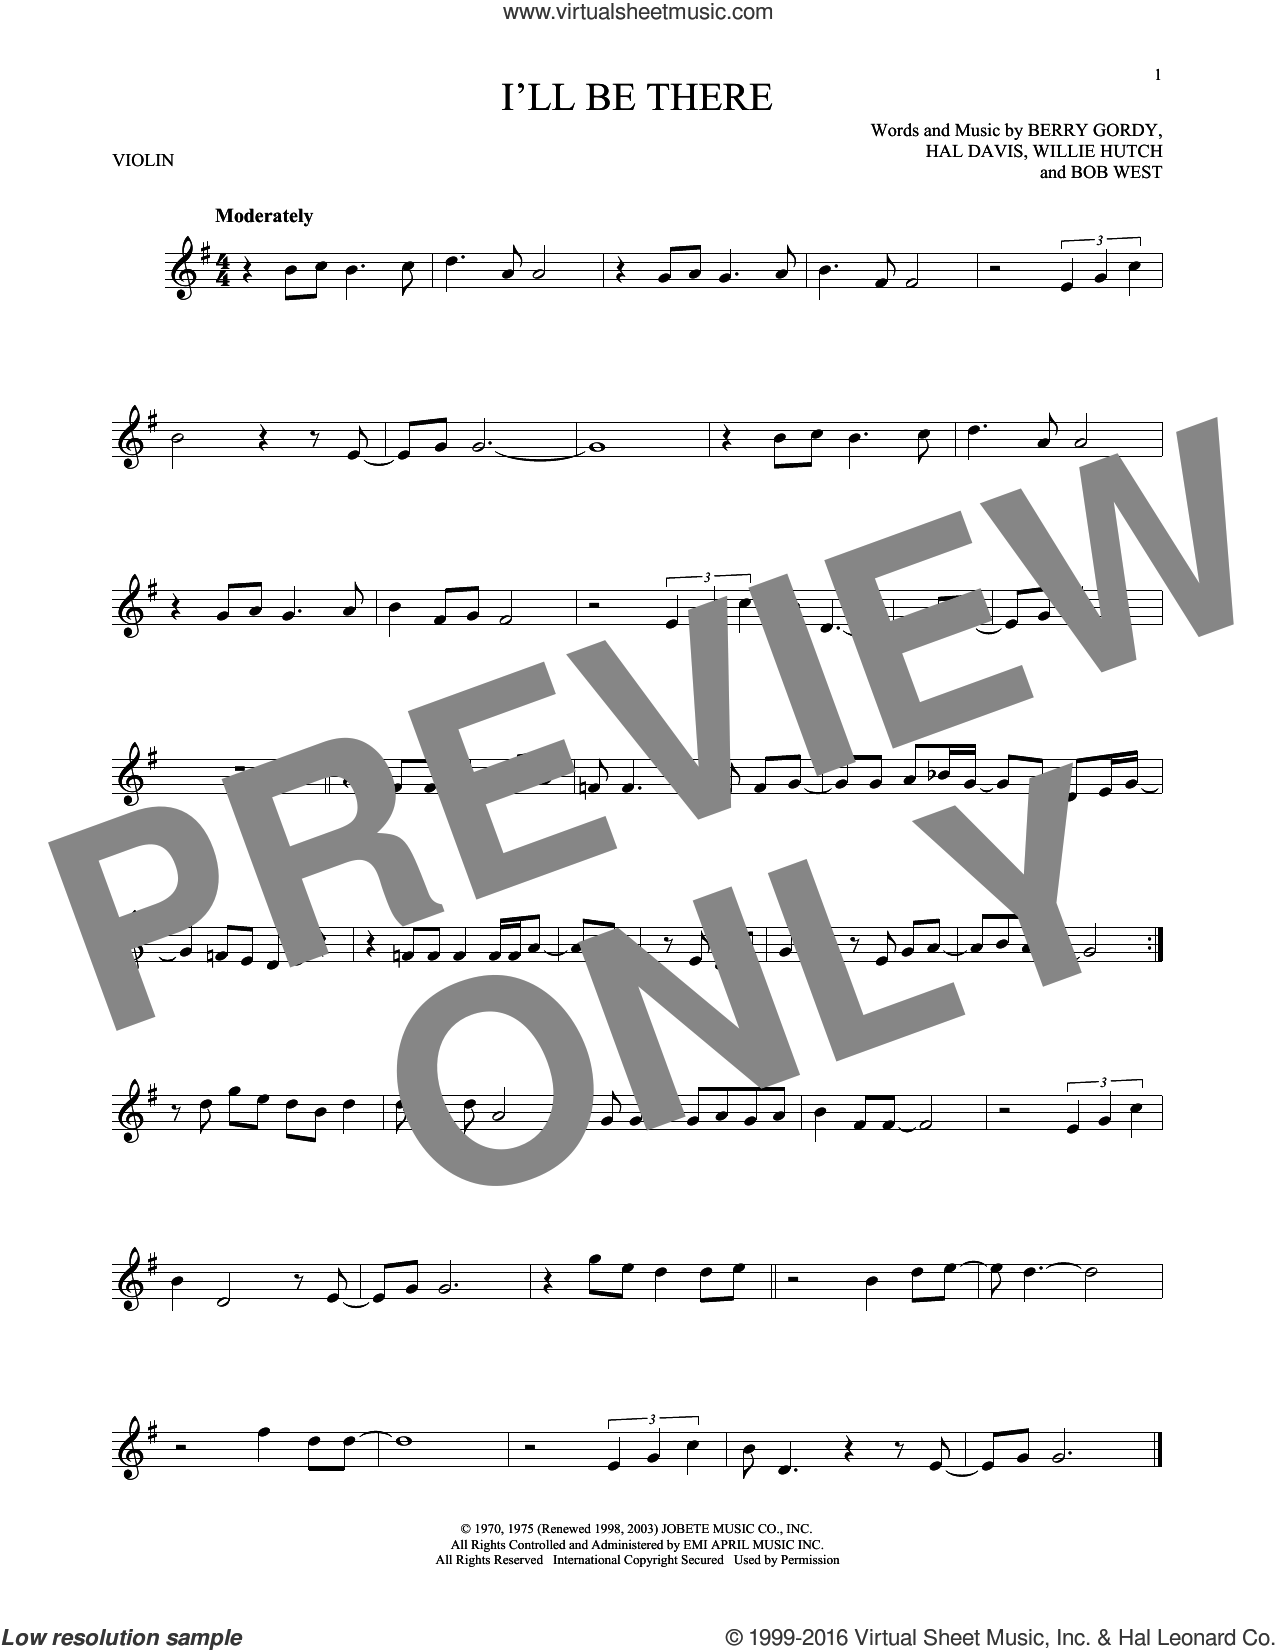 I'll Be There sheet music for violin solo by The Jackson 5, Berry Gordy Jr., Bob West, Hal Davis and Willie Hutch, intermediate skill level